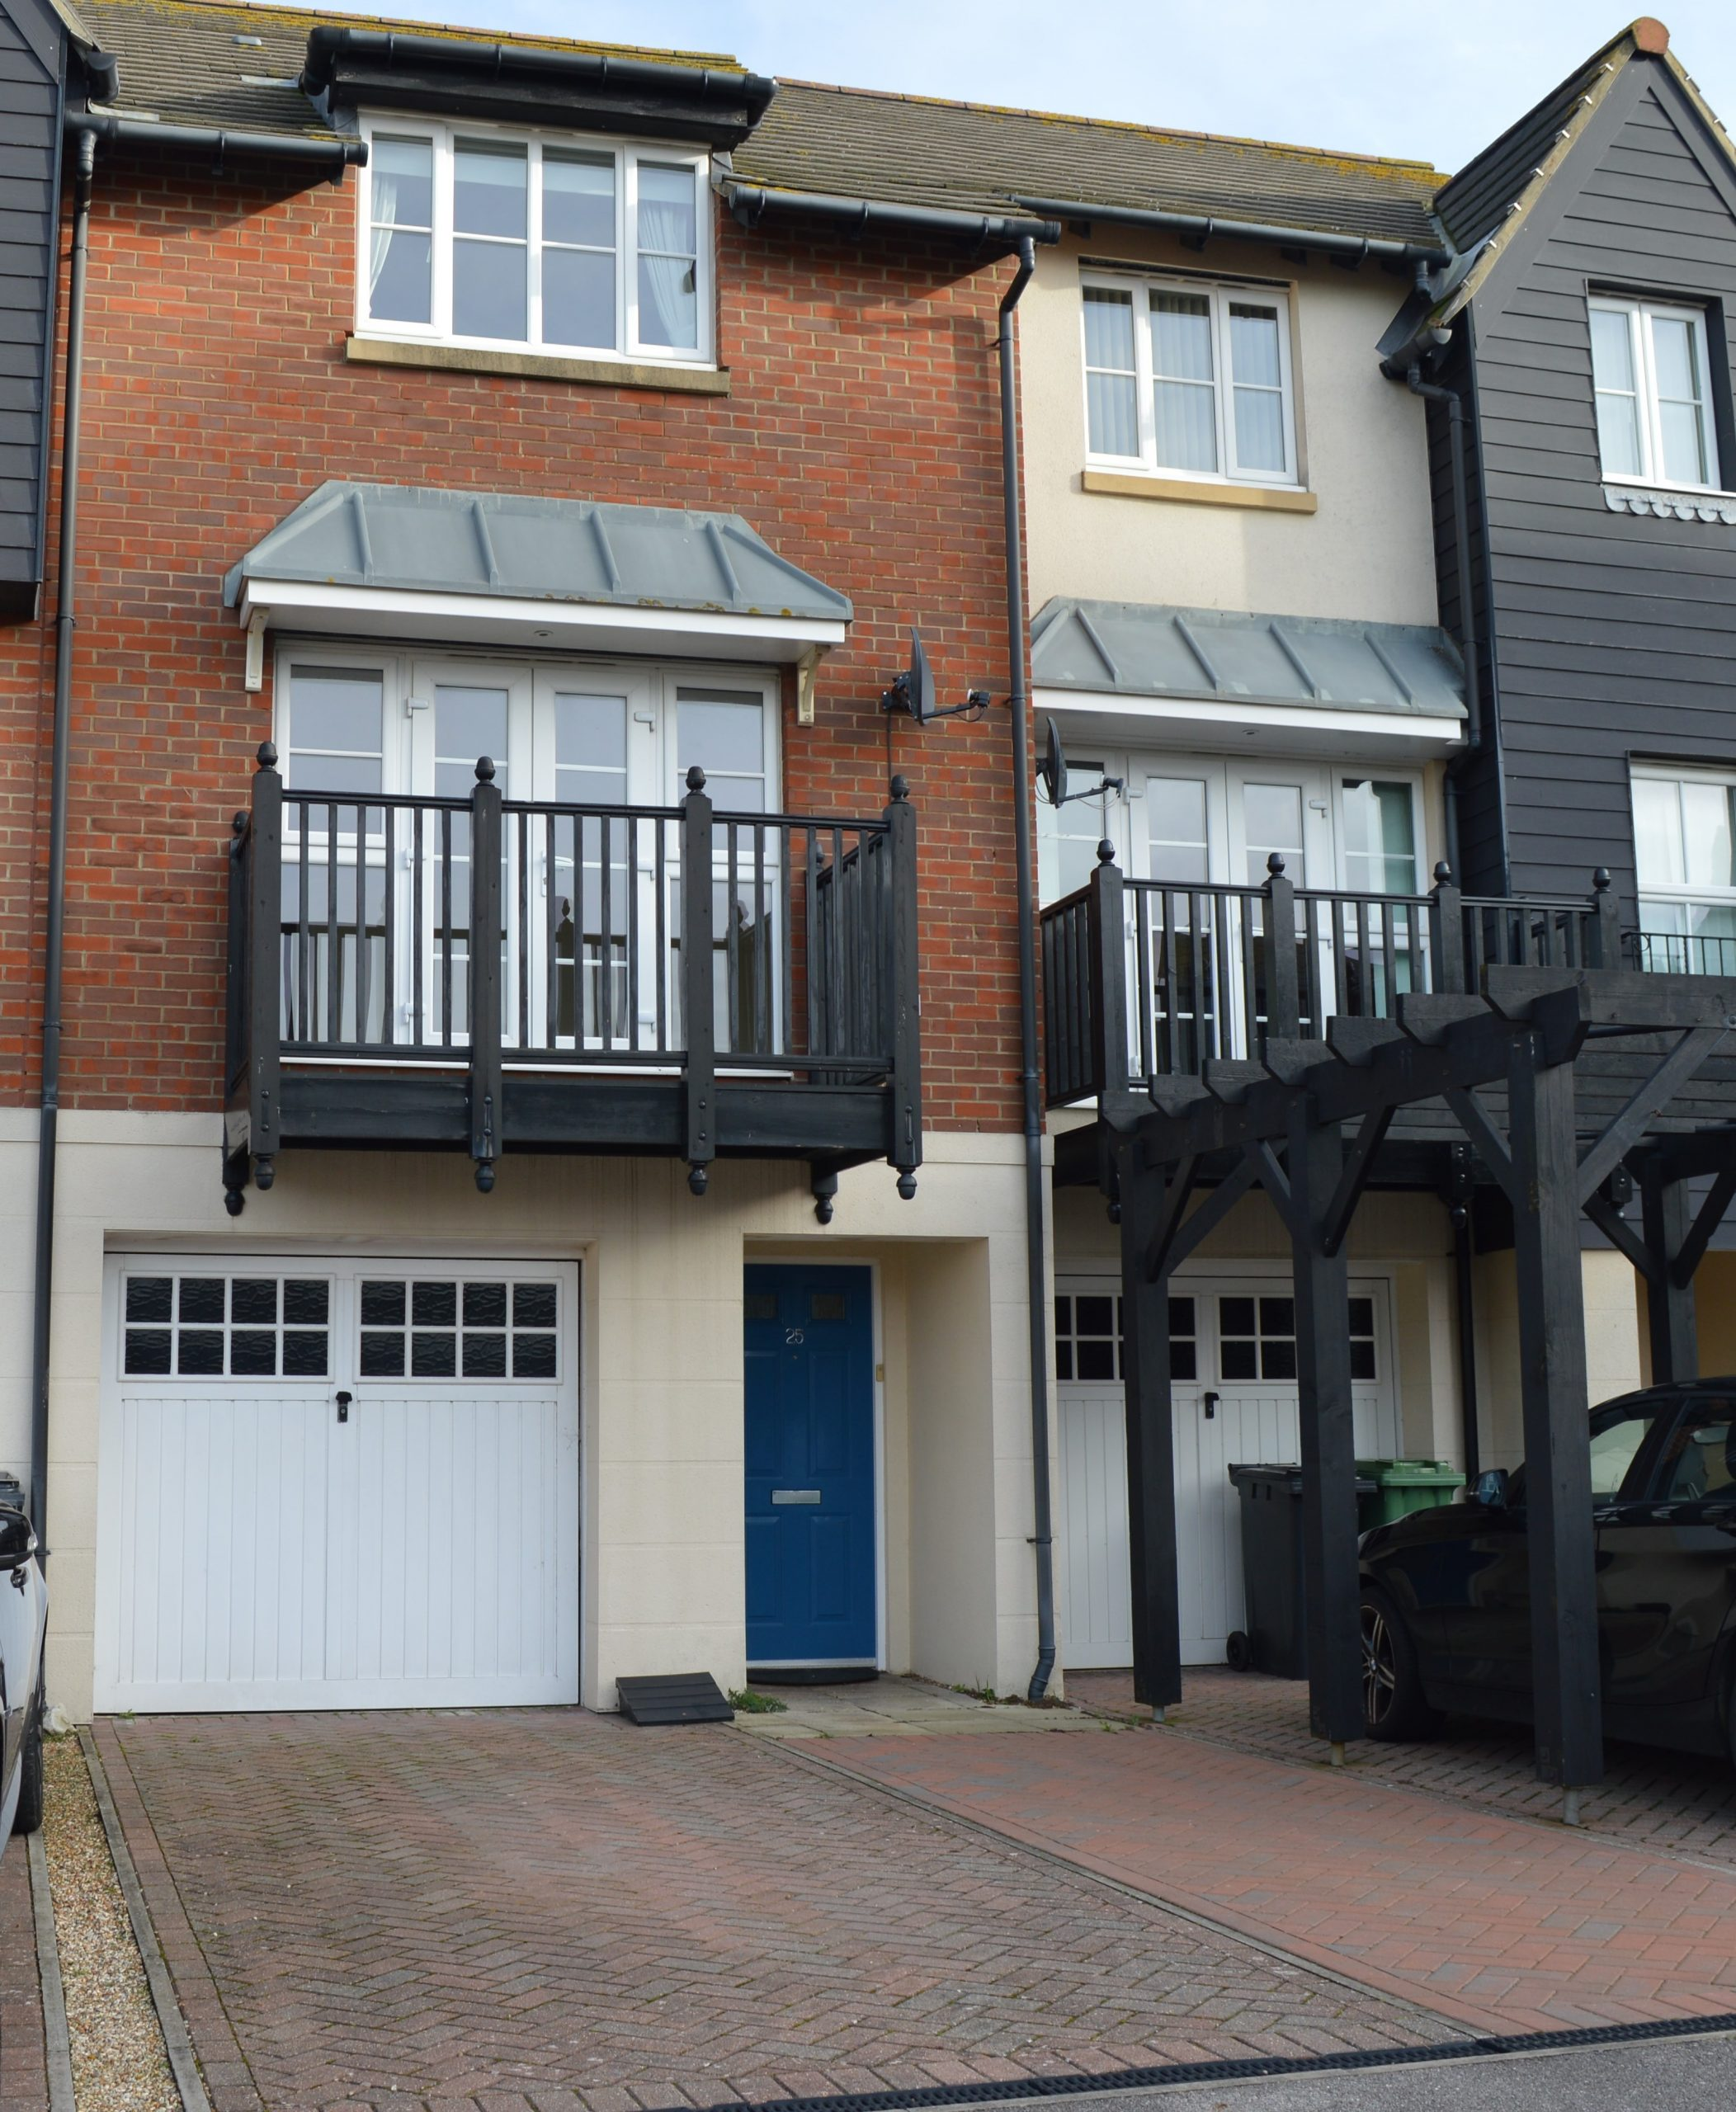 Immaculate 3 Bedroom Townhouse in Sought After North Harbour